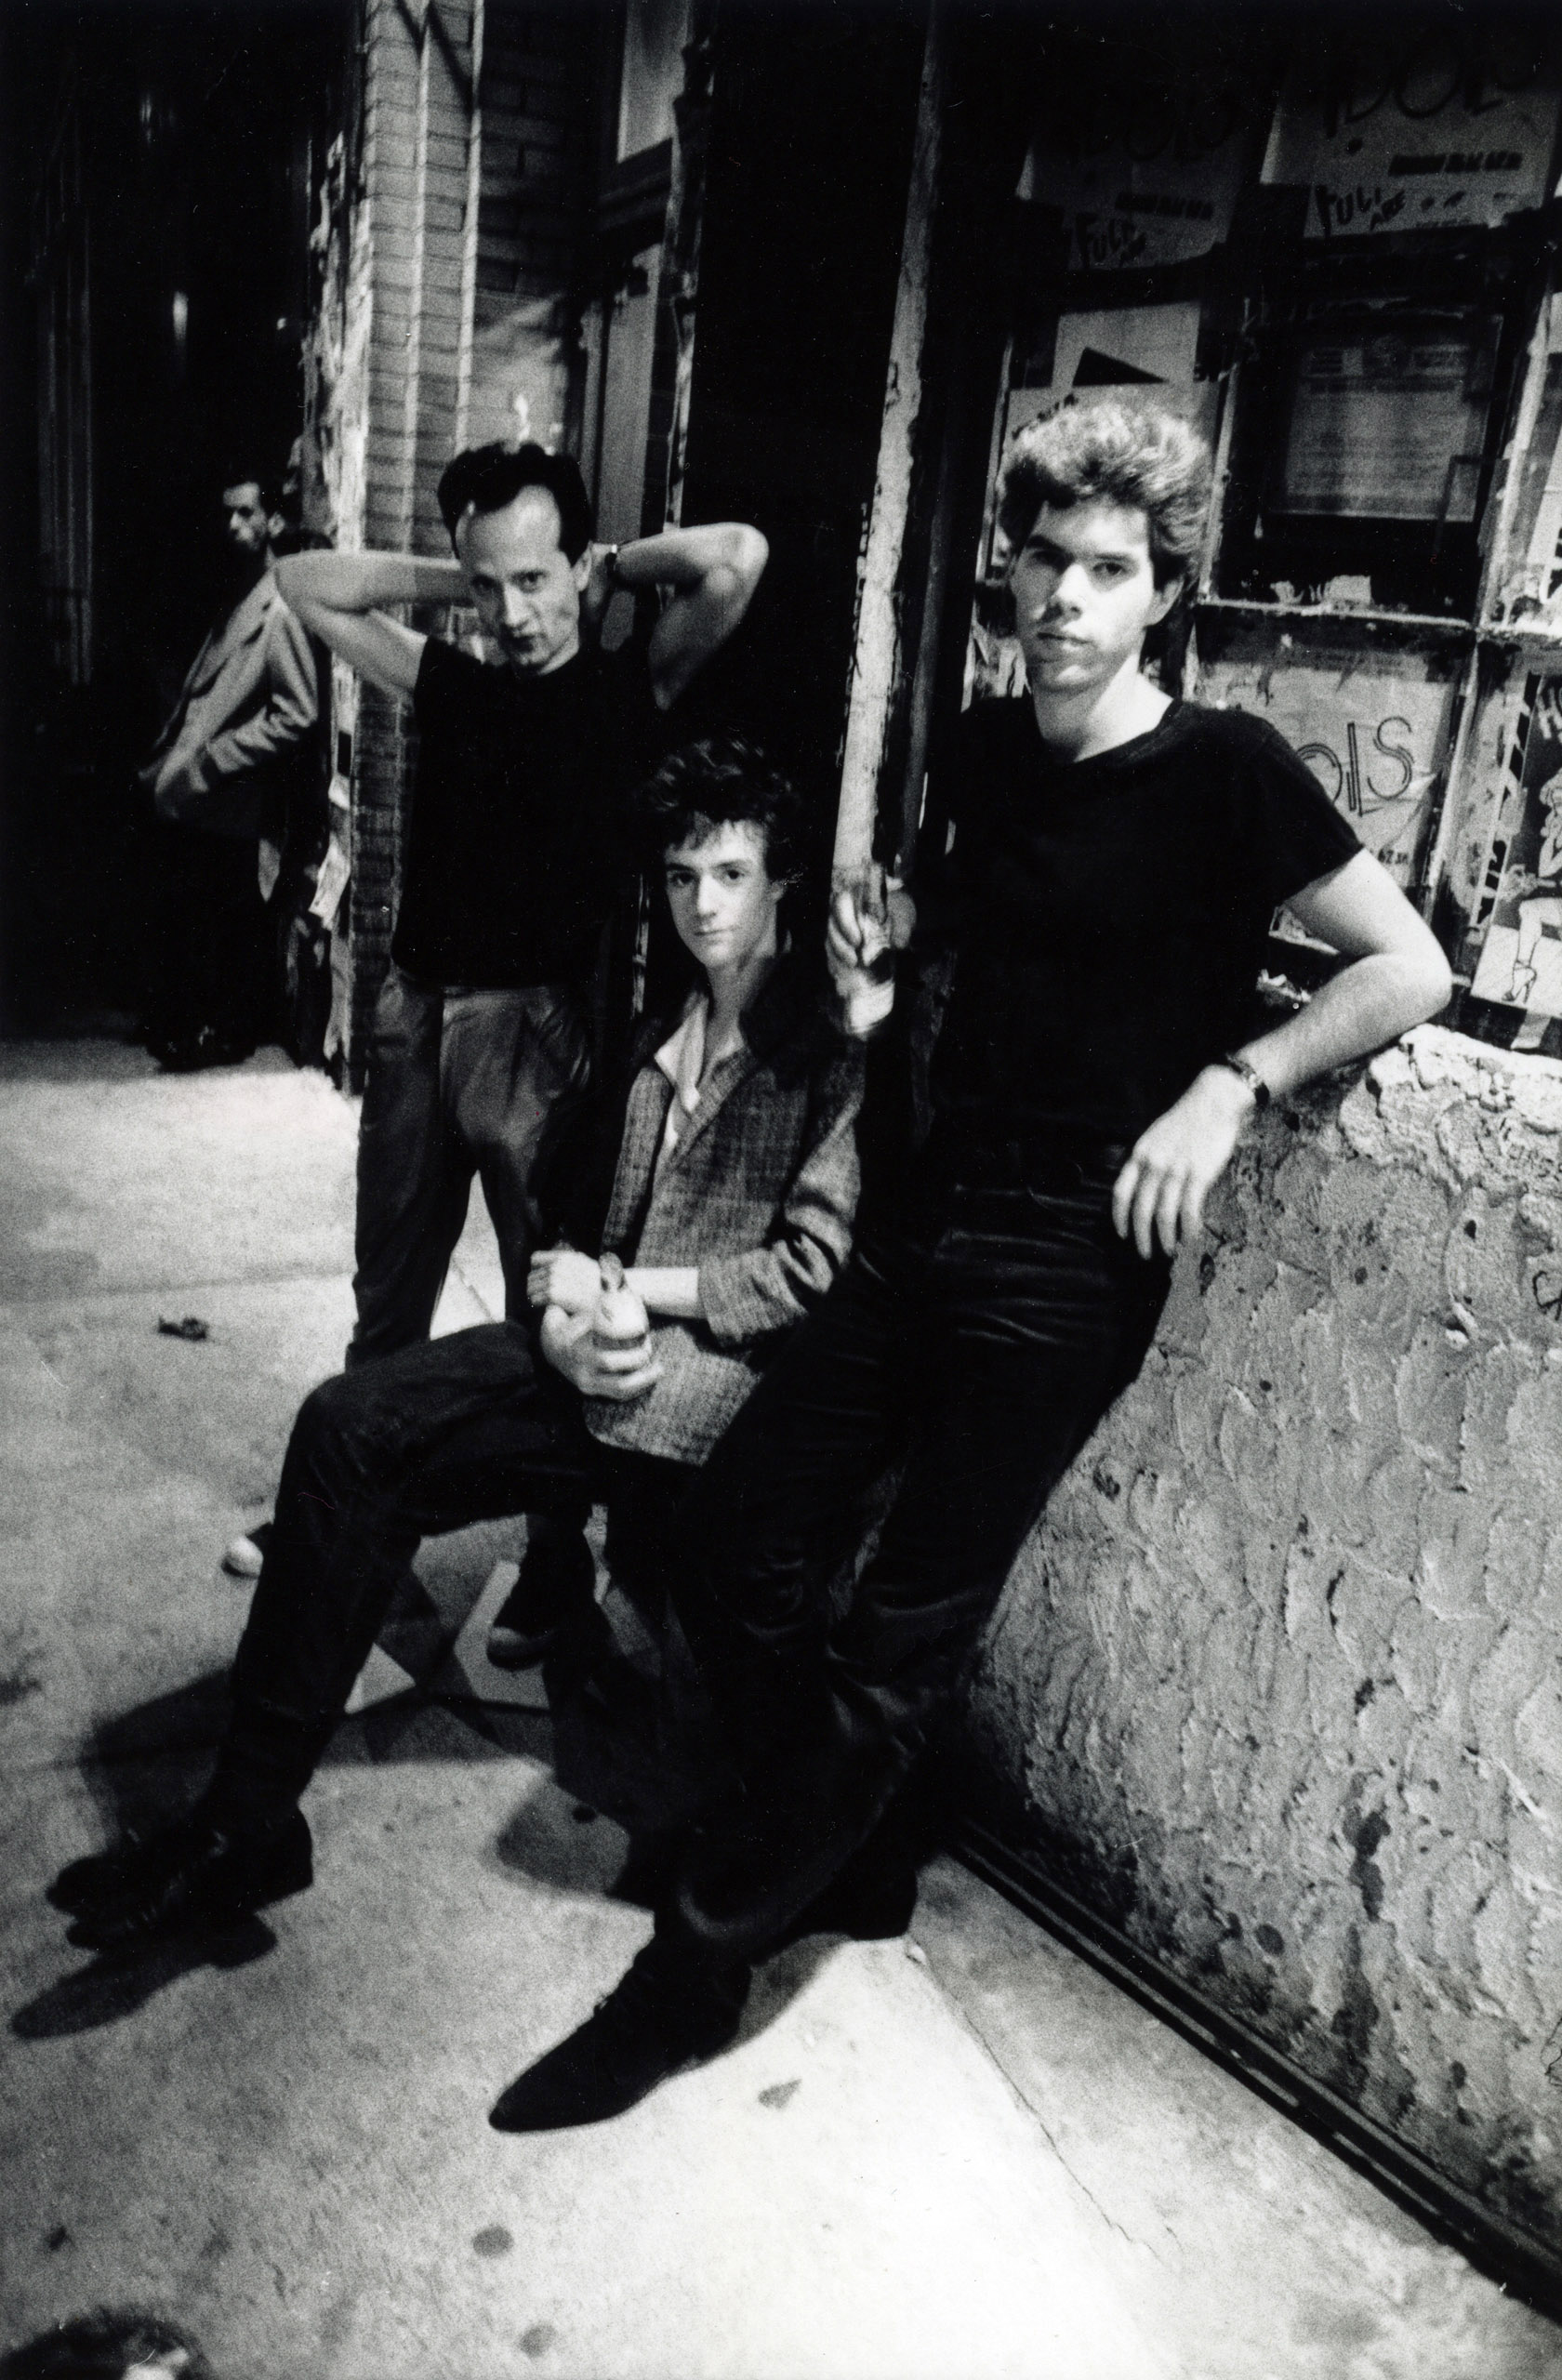 Klaus Nomi, Christopher Parker, and Jim Jarmusch, Bowery, 1978.